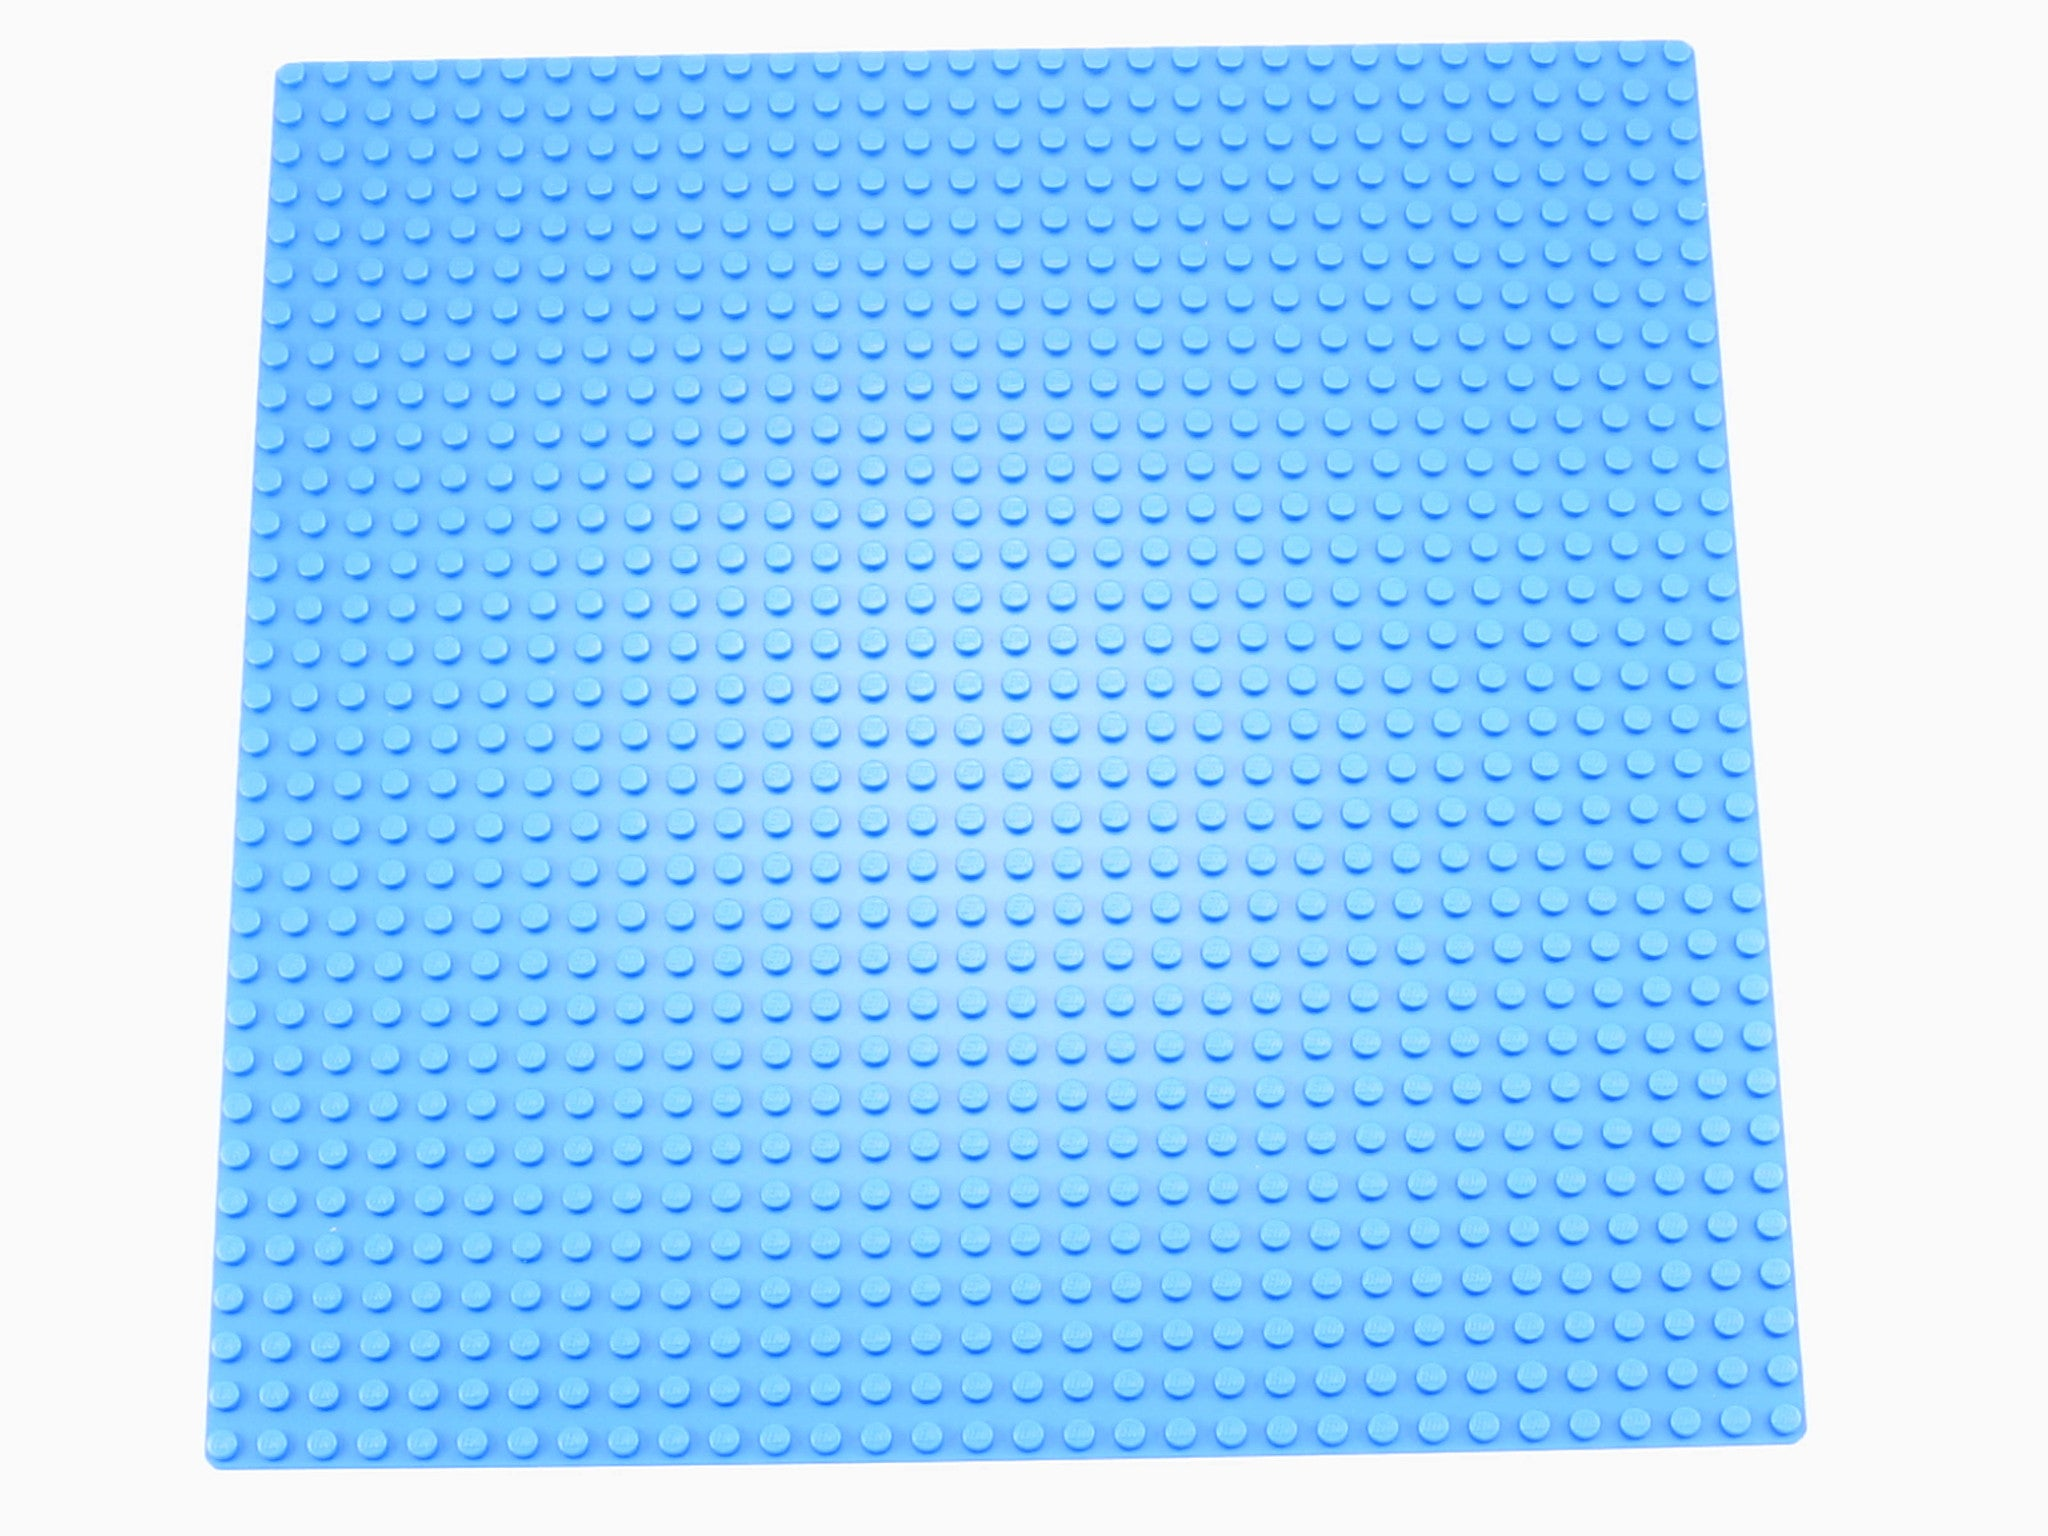 LEGO Blue Baseplate 32x32 Part Piece 3811 Base Plate